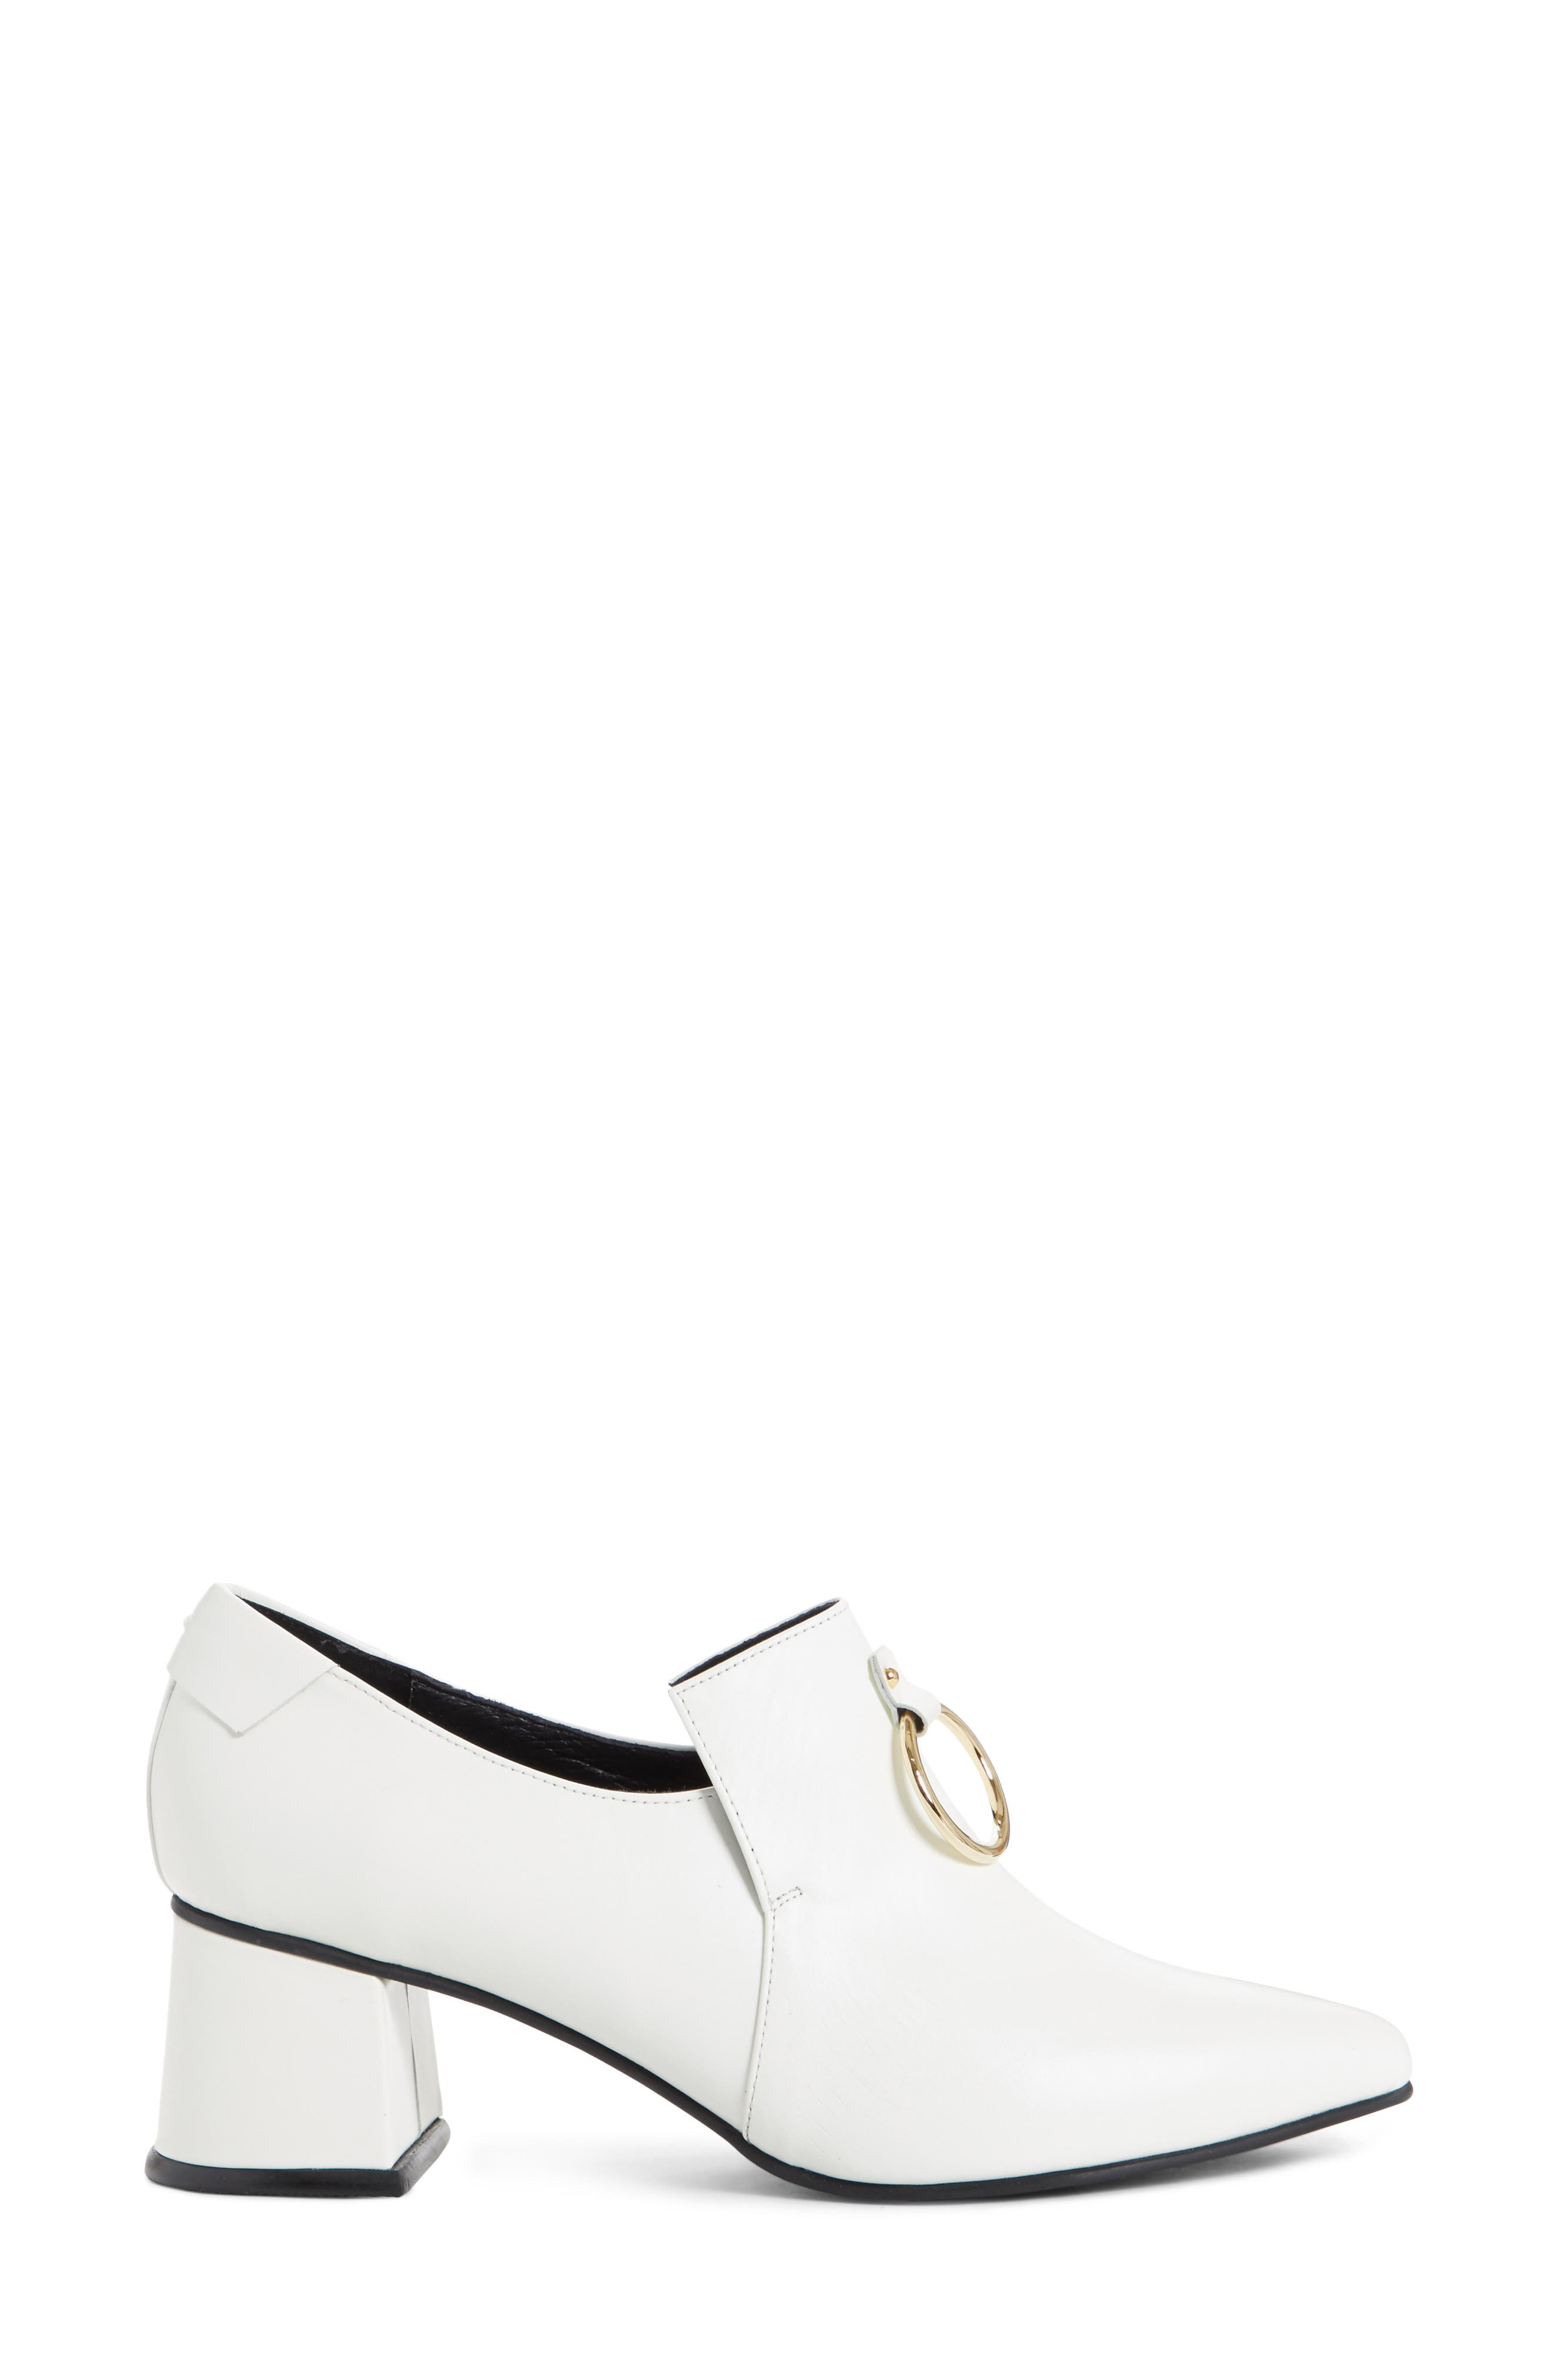 Ring Middle Loafer Pump,                             Alternate thumbnail 3, color,                             White